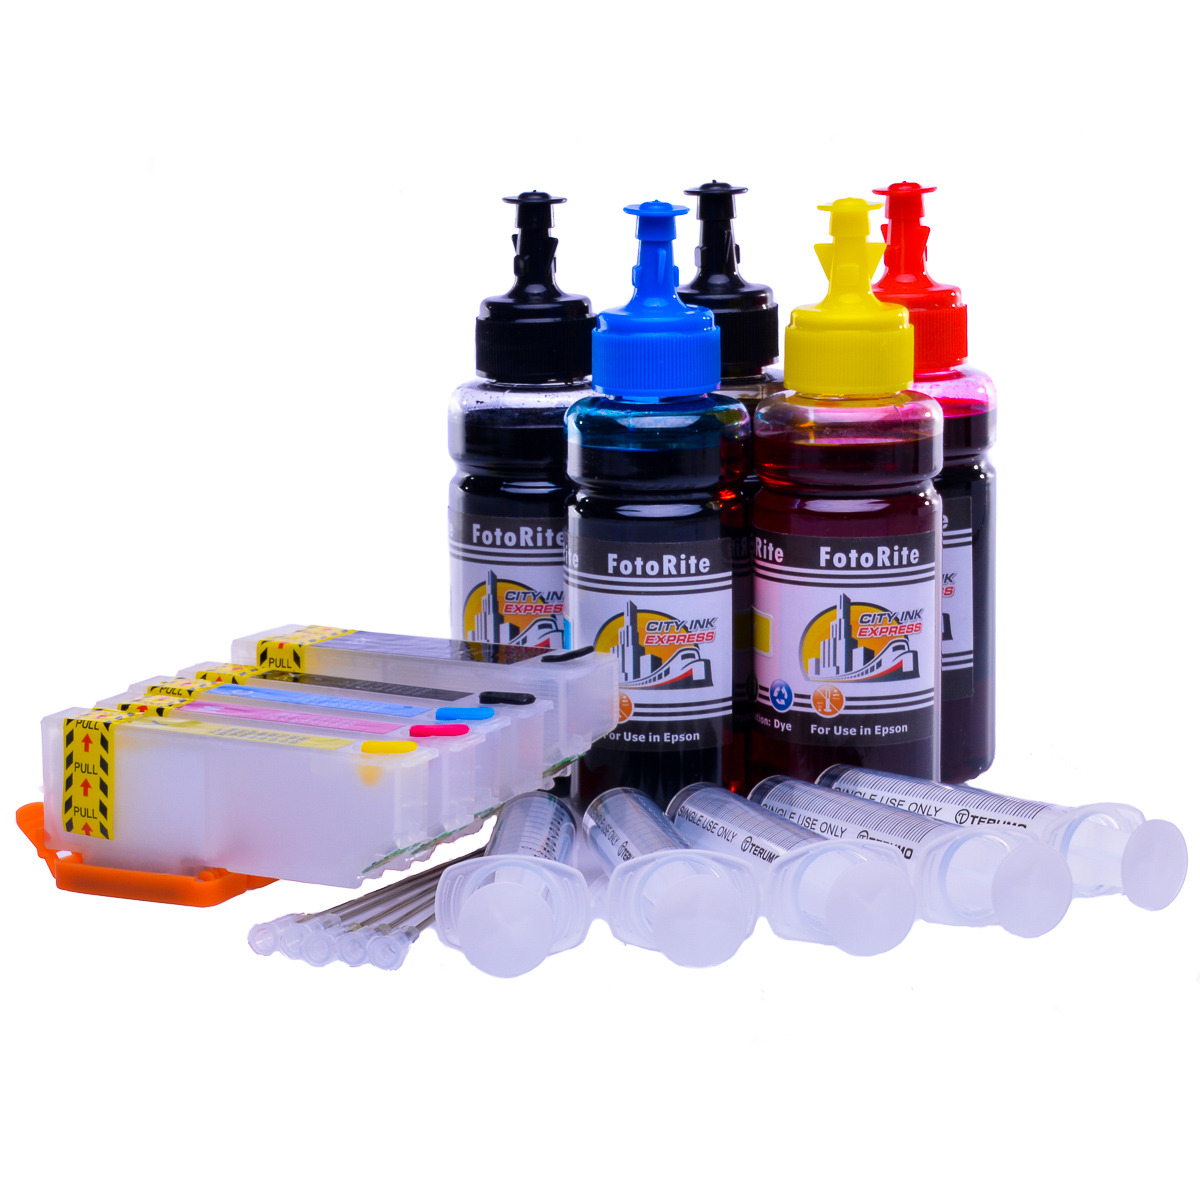 Multipack Cheap printer cartridges for Epson XP-800 | Refillable dye and pigment ink